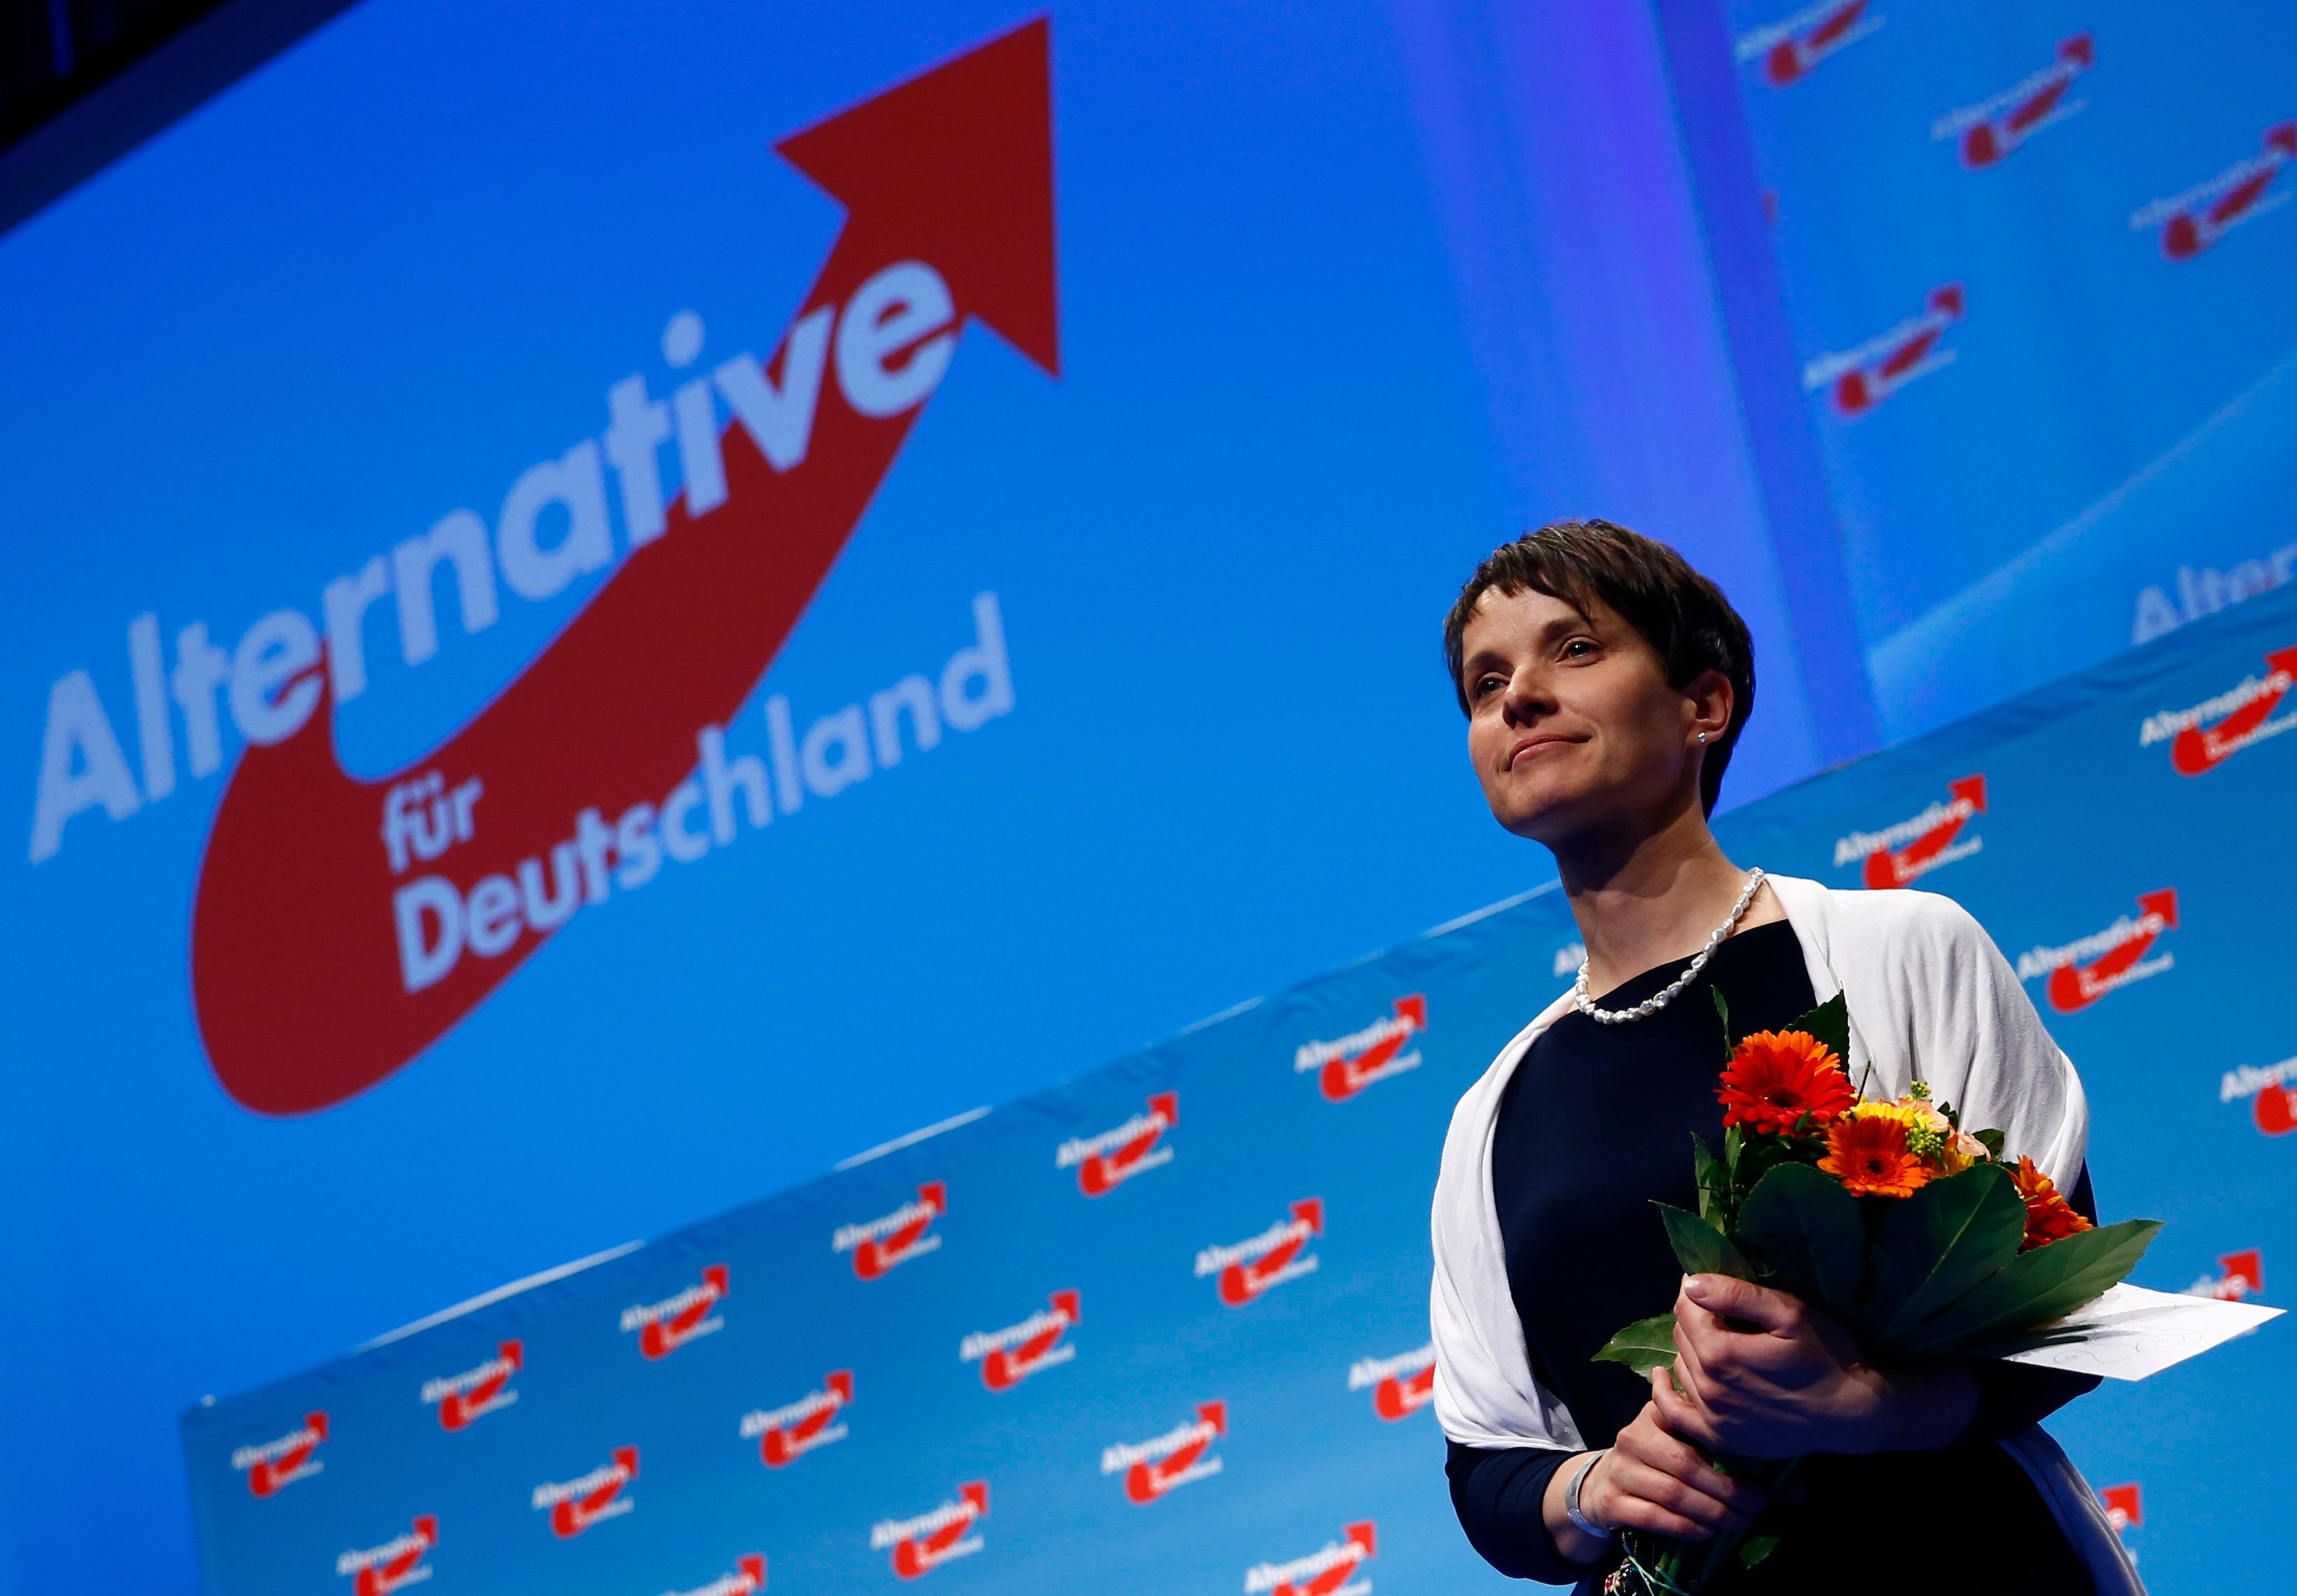 Frauke Petry, chairwoman of the anti-immigration party Alternative for Germany, has steered the once-eurosceptic party toward